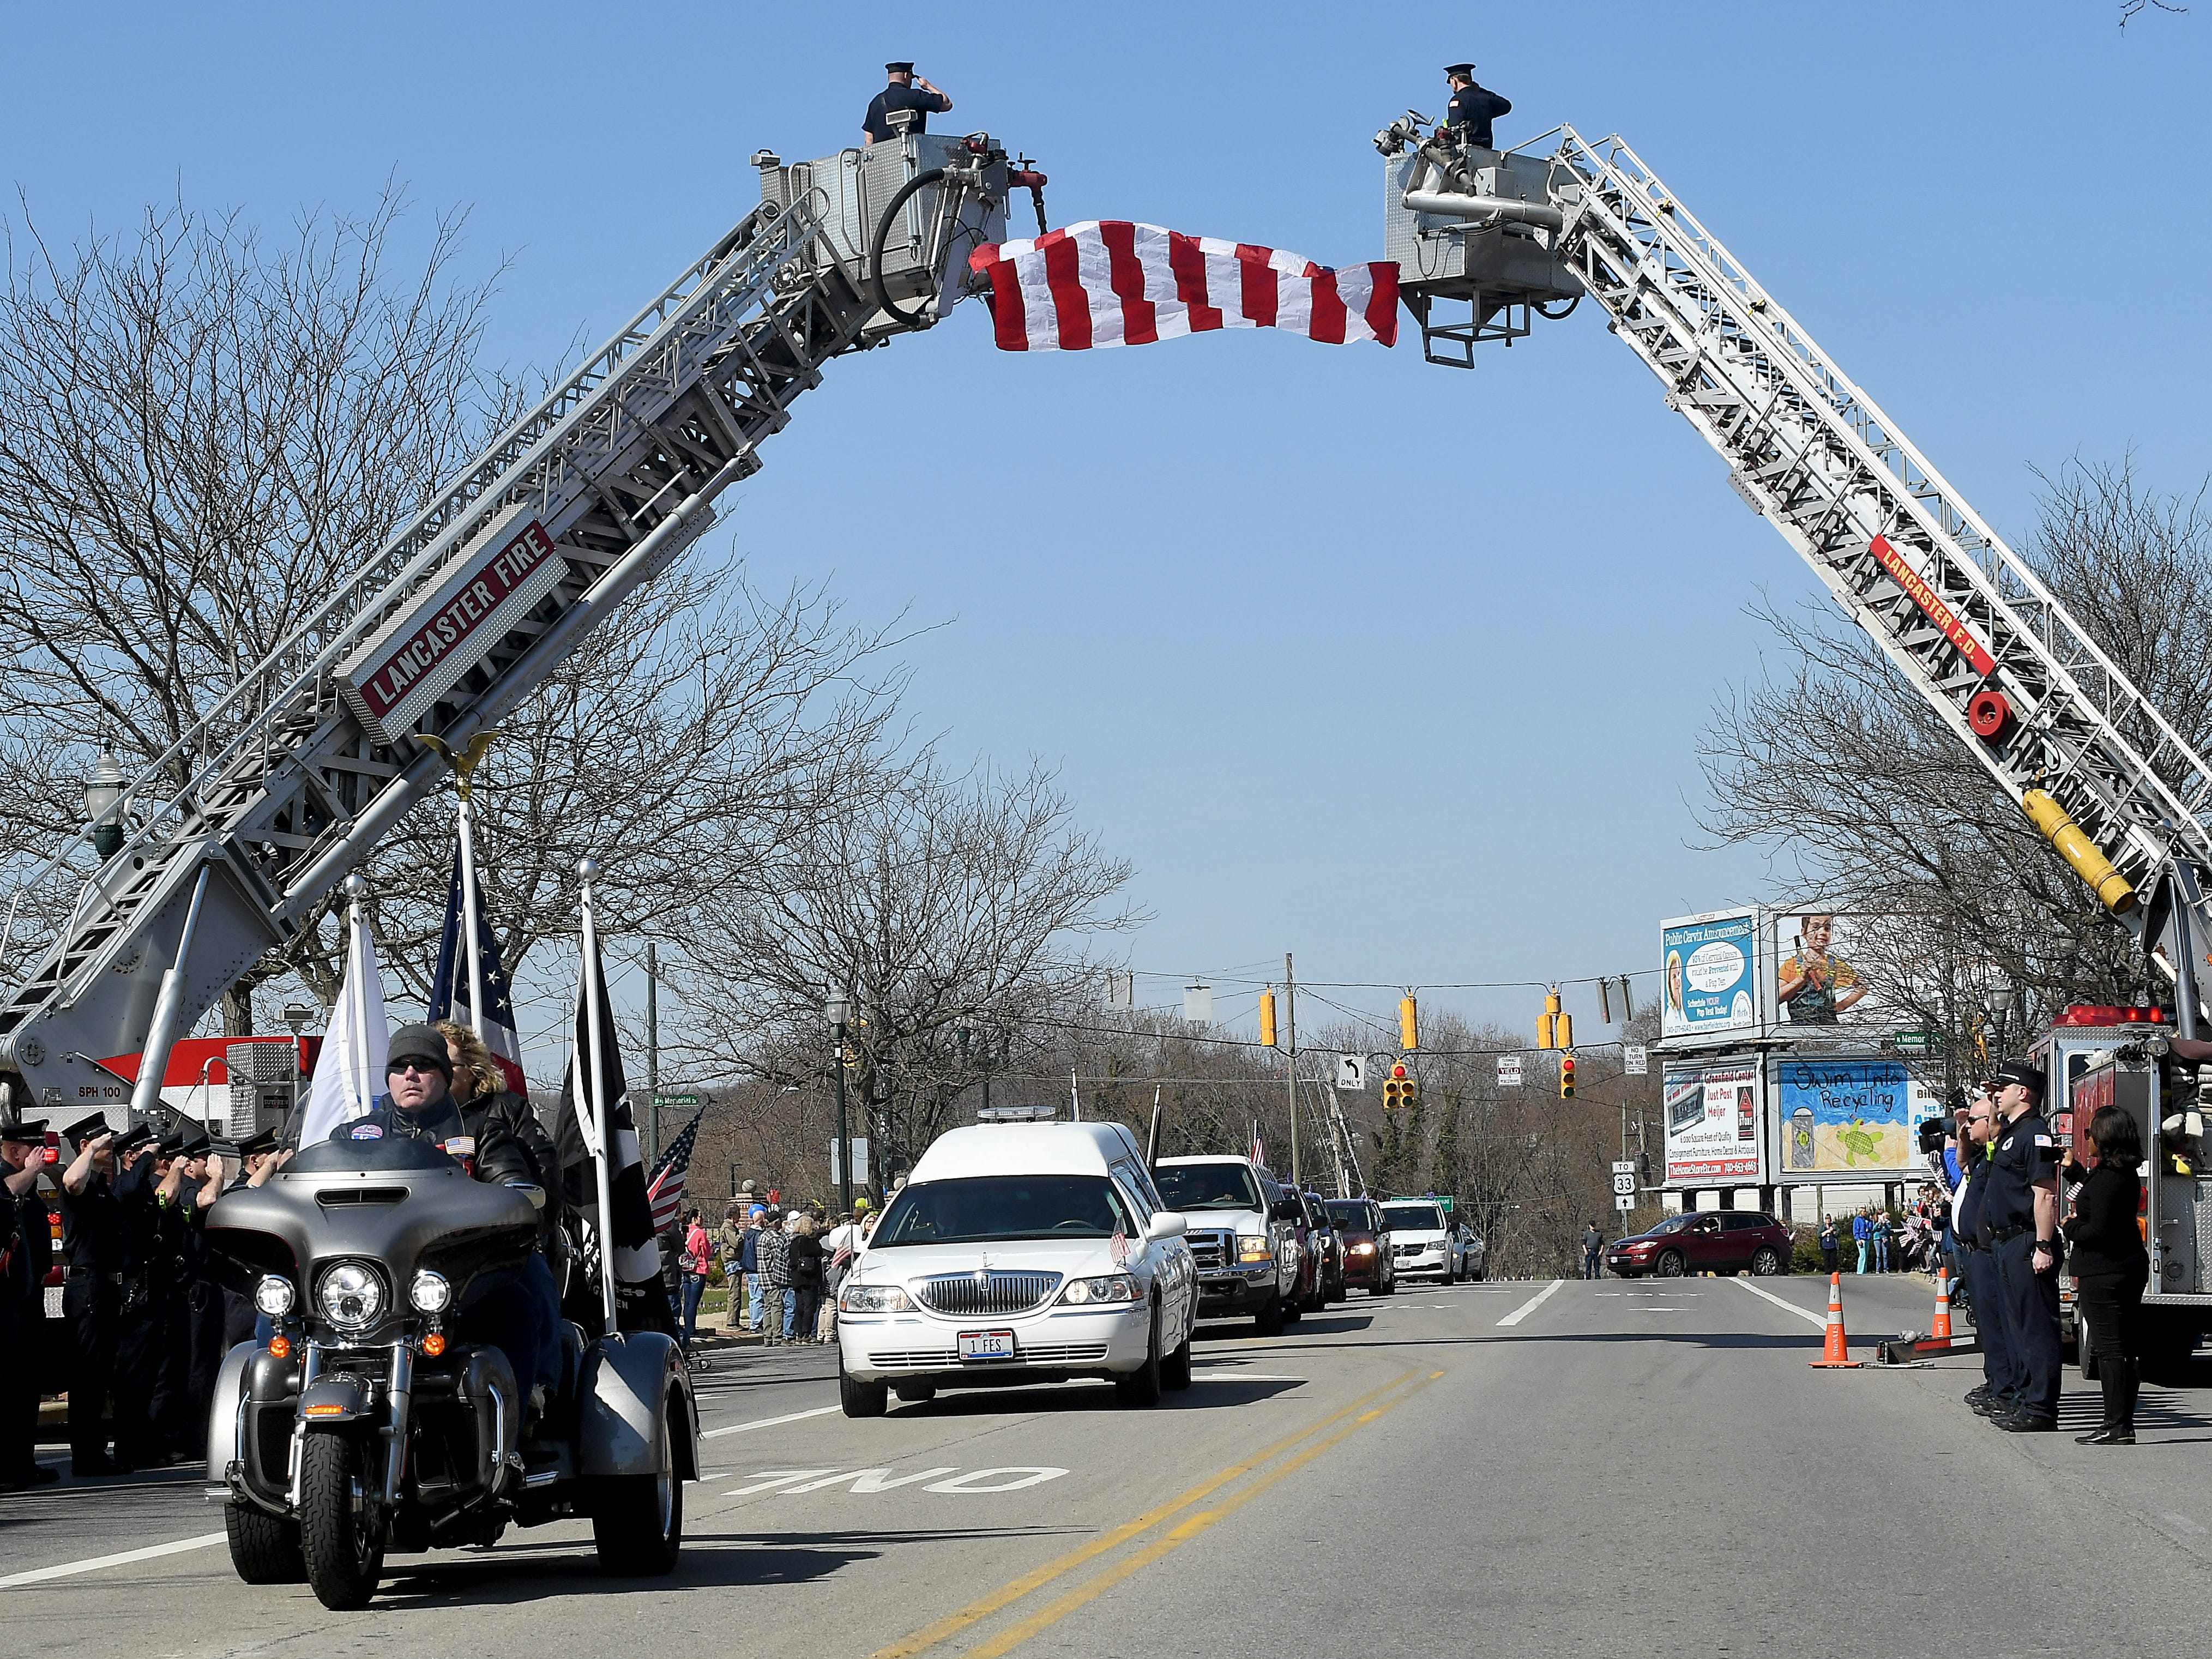 Patriot Guard Riders Richard and Anna Zimmerly lead the hearse carrying U.S. Army Sgt. Joseph Collette down Main Street in Lancaster on Wednesday, April 3, 2019.